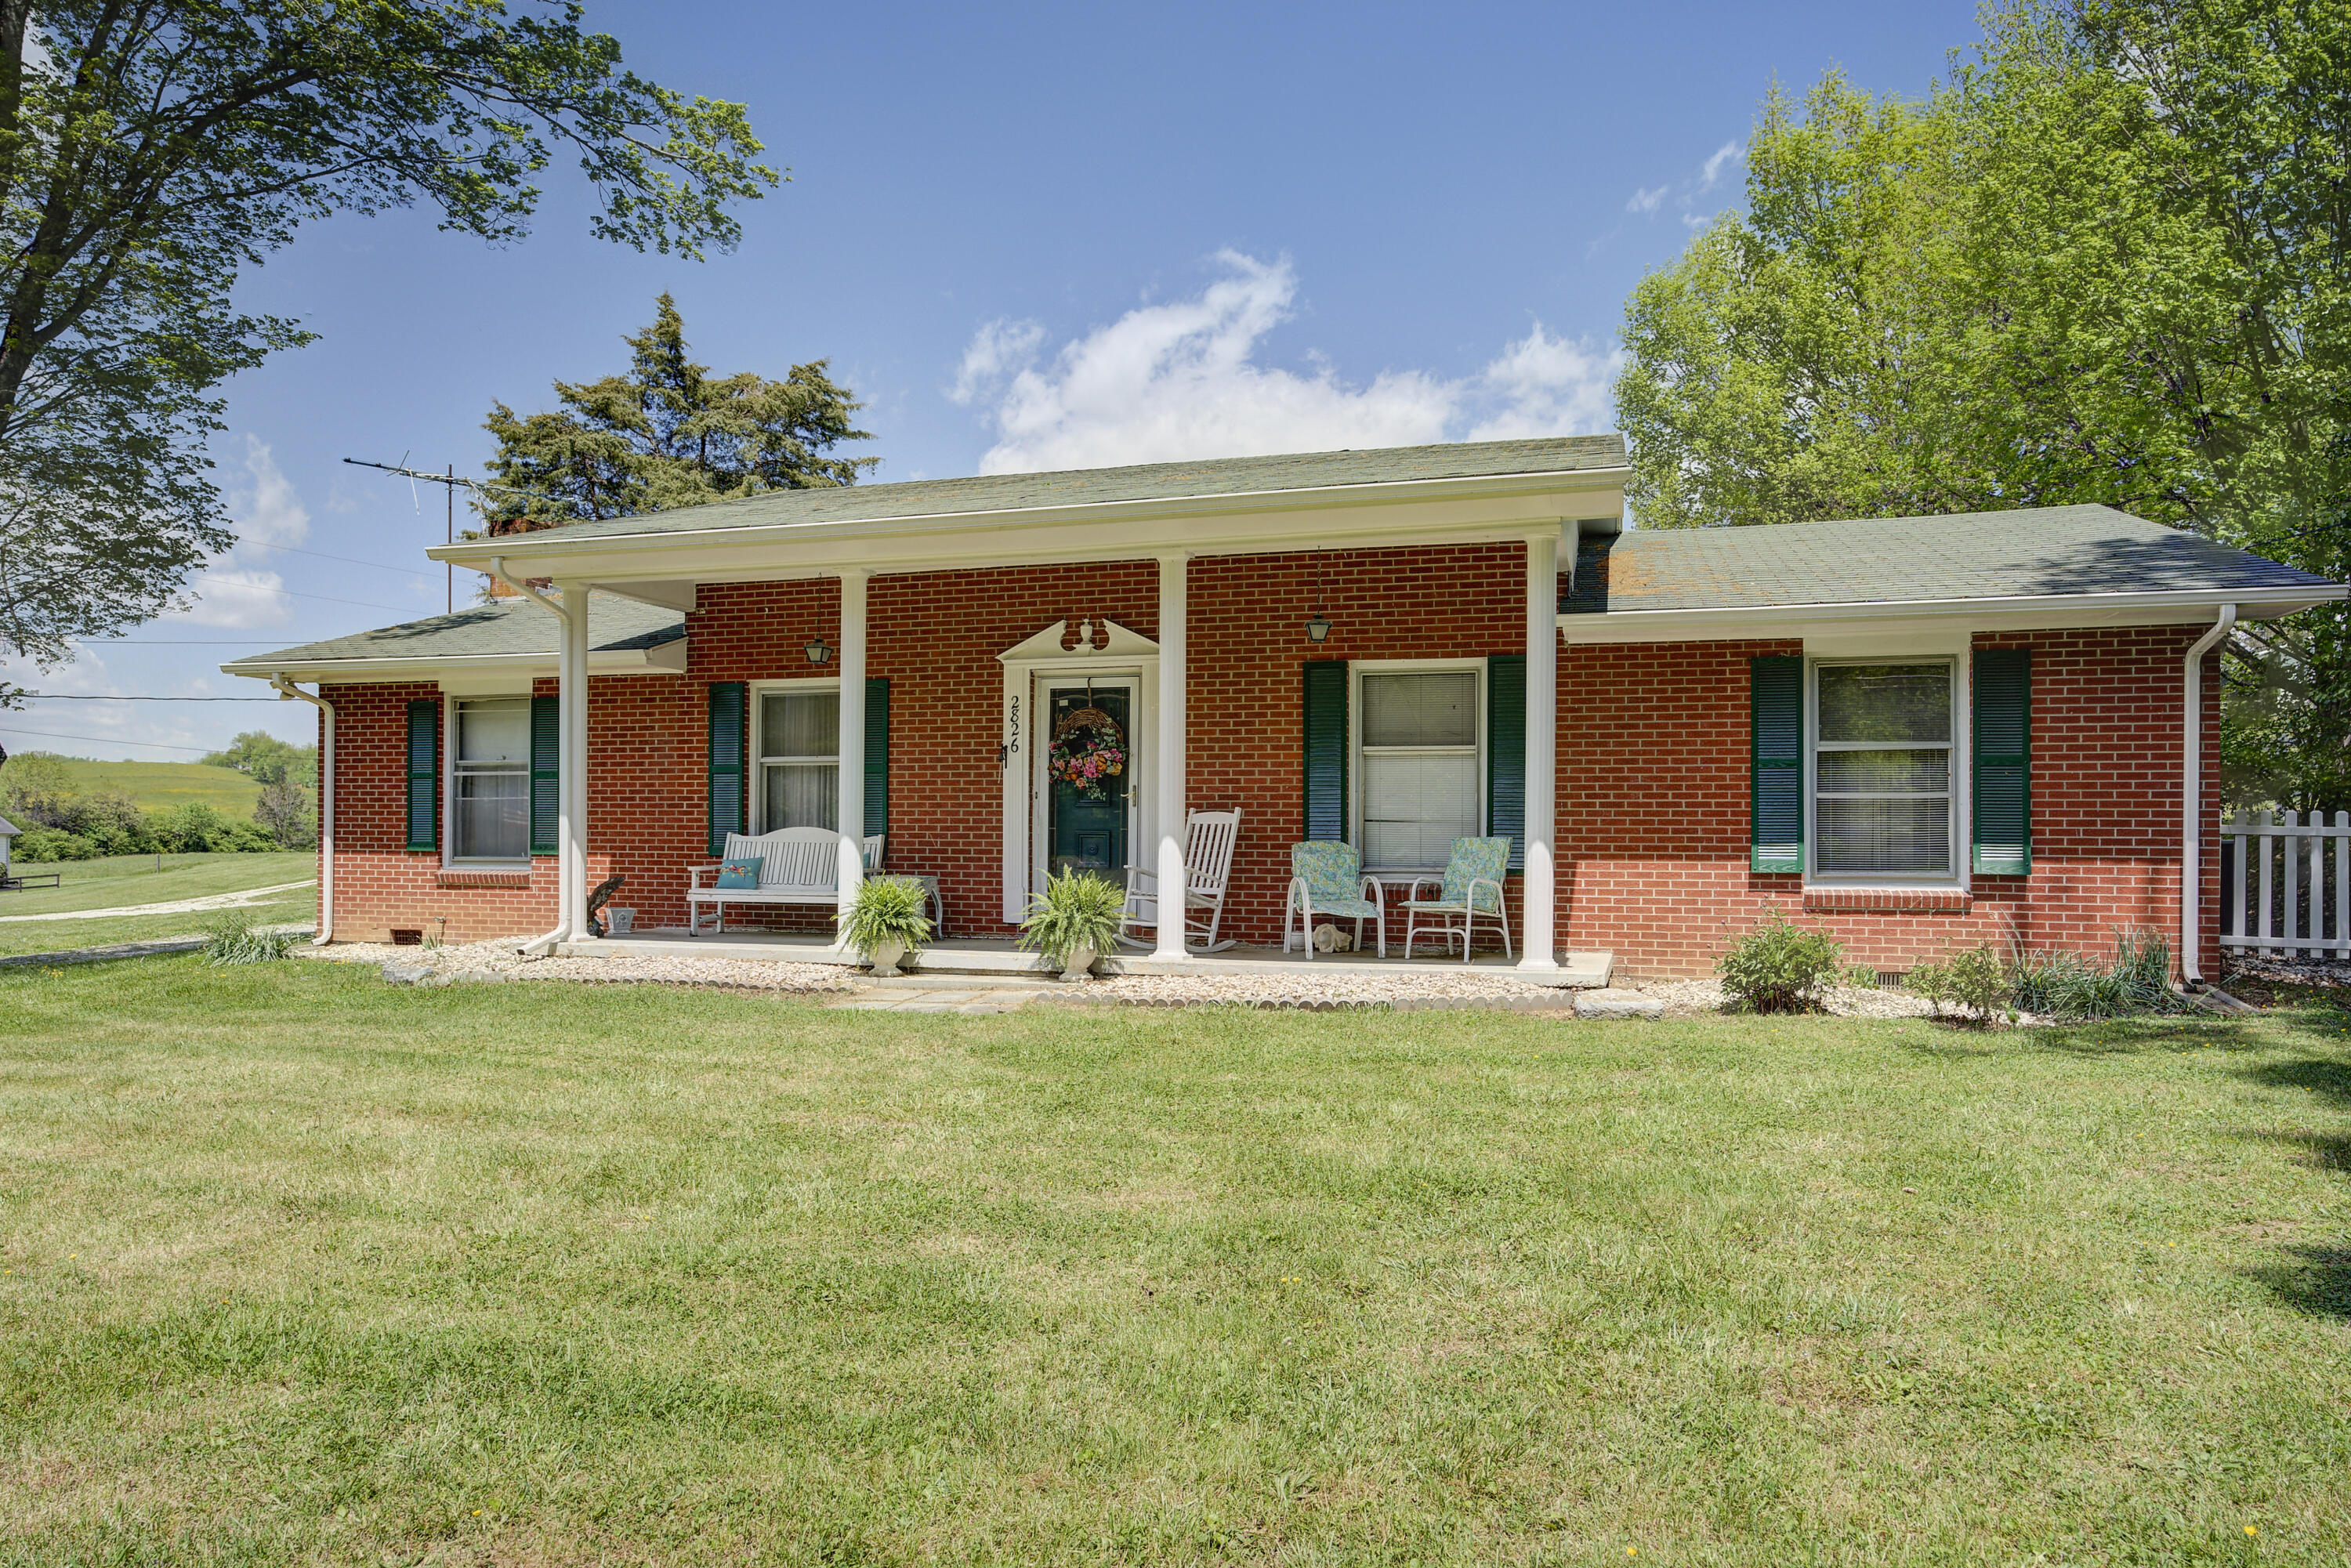 2826 Indian Ridge Road, Johnson City, Tennessee 37604, 3 Bedrooms Bedrooms, ,2 BathroomsBathrooms,Single Family,For Sale,2826 Indian Ridge Road,1,9921699